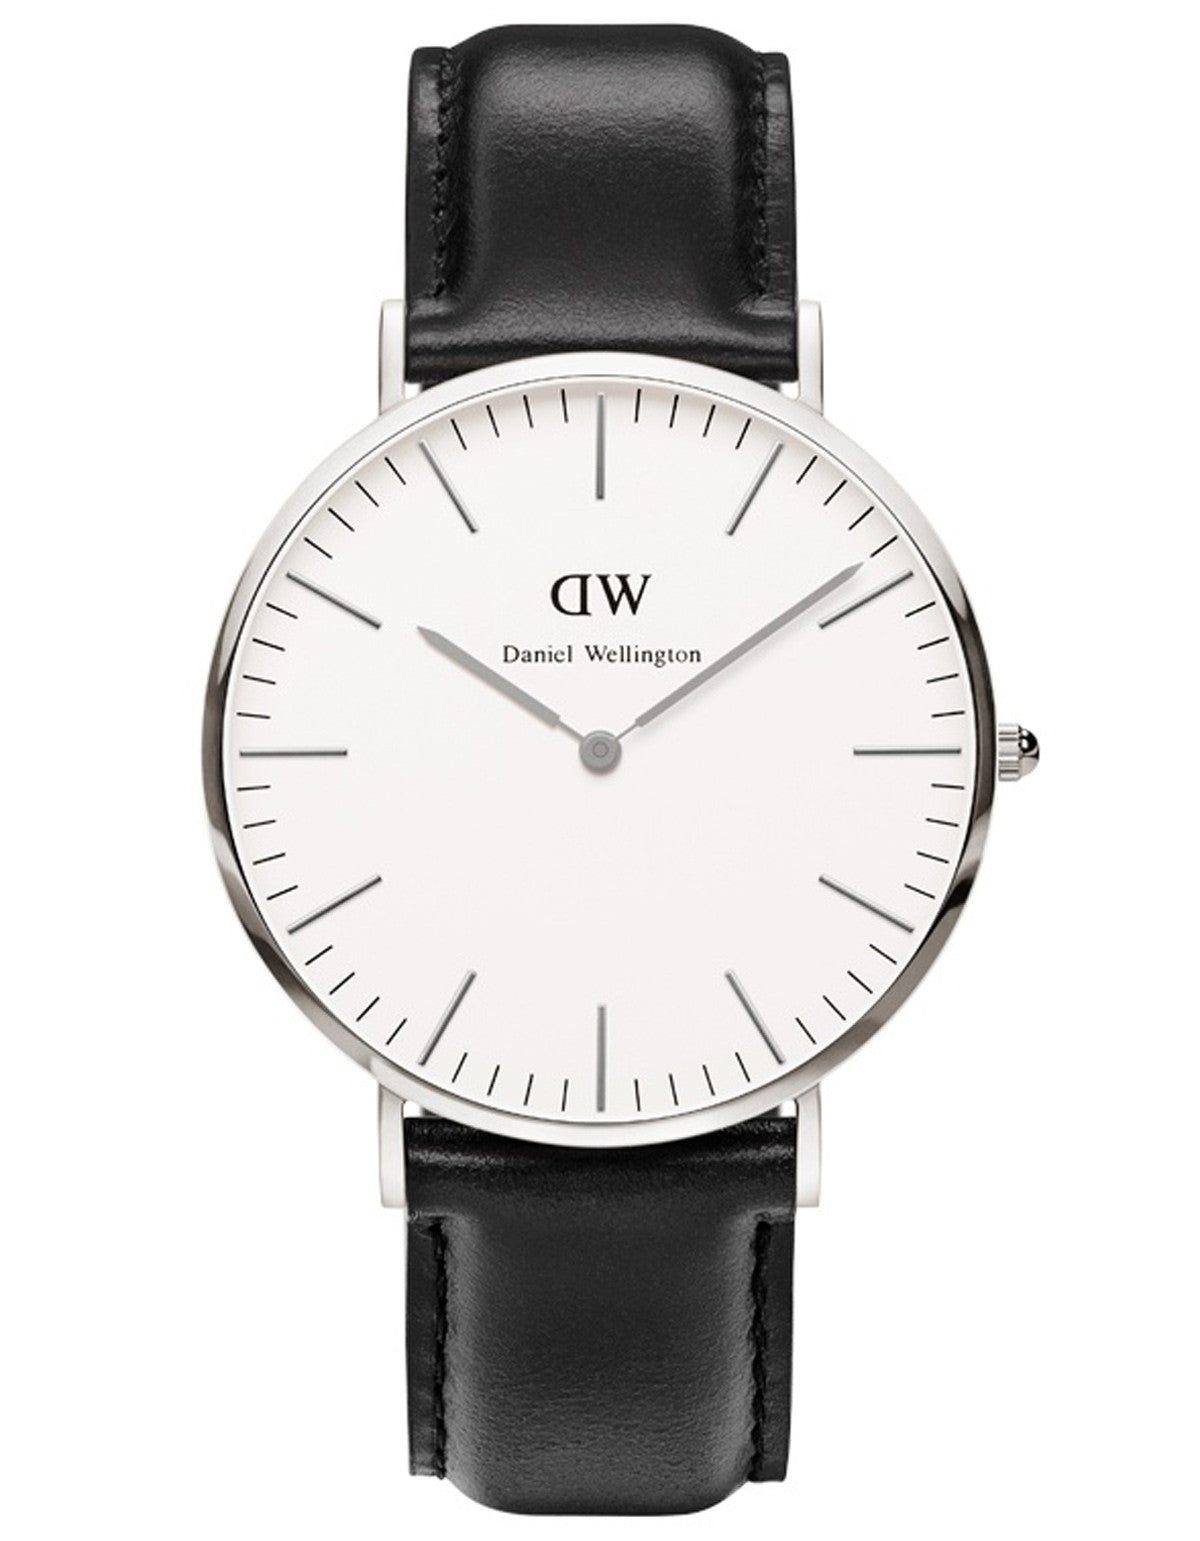 Daniel Wellington Sheffield Watch Silver 40mm - Still Life - 1